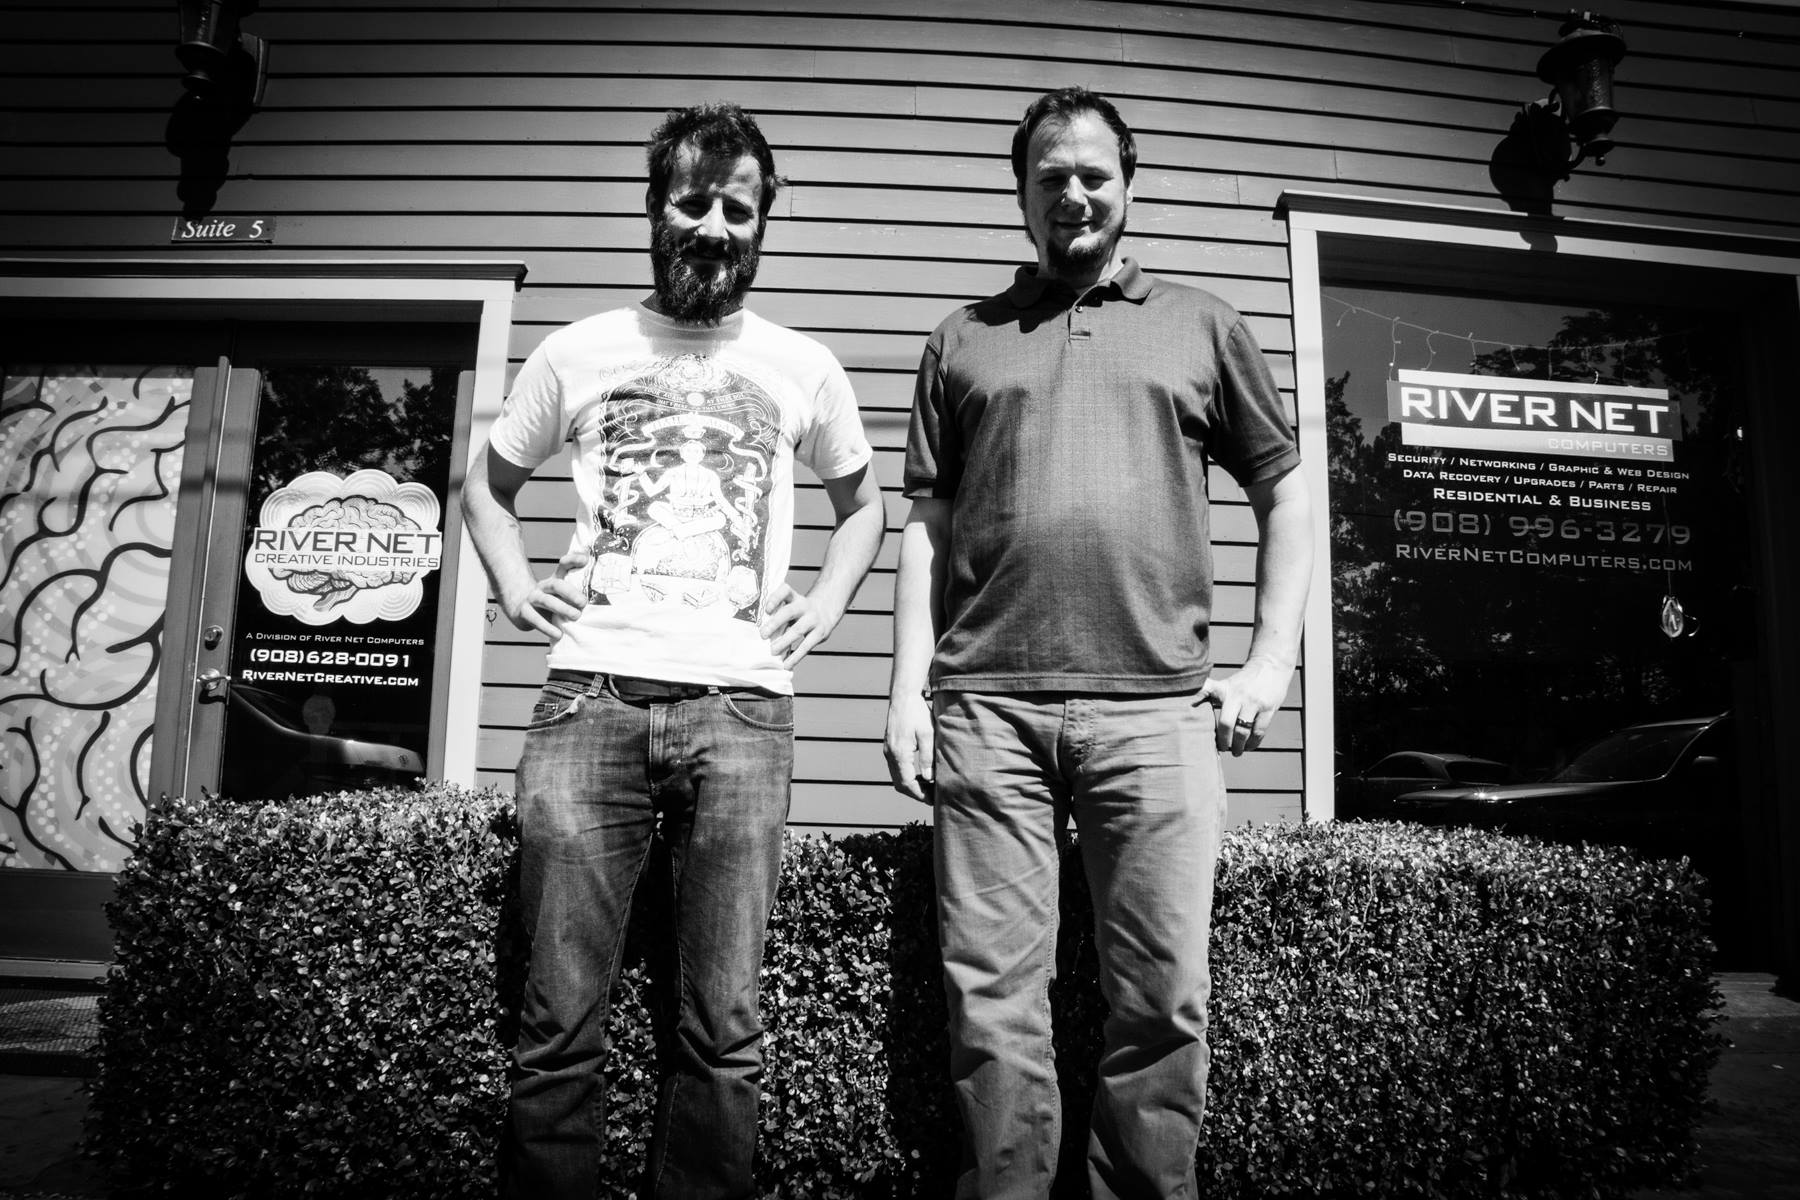 Dave Cahill, pictured with his brother James Cahill. Dave and Jim are co-owners of River Net Computers in Frenchtown, N.J.